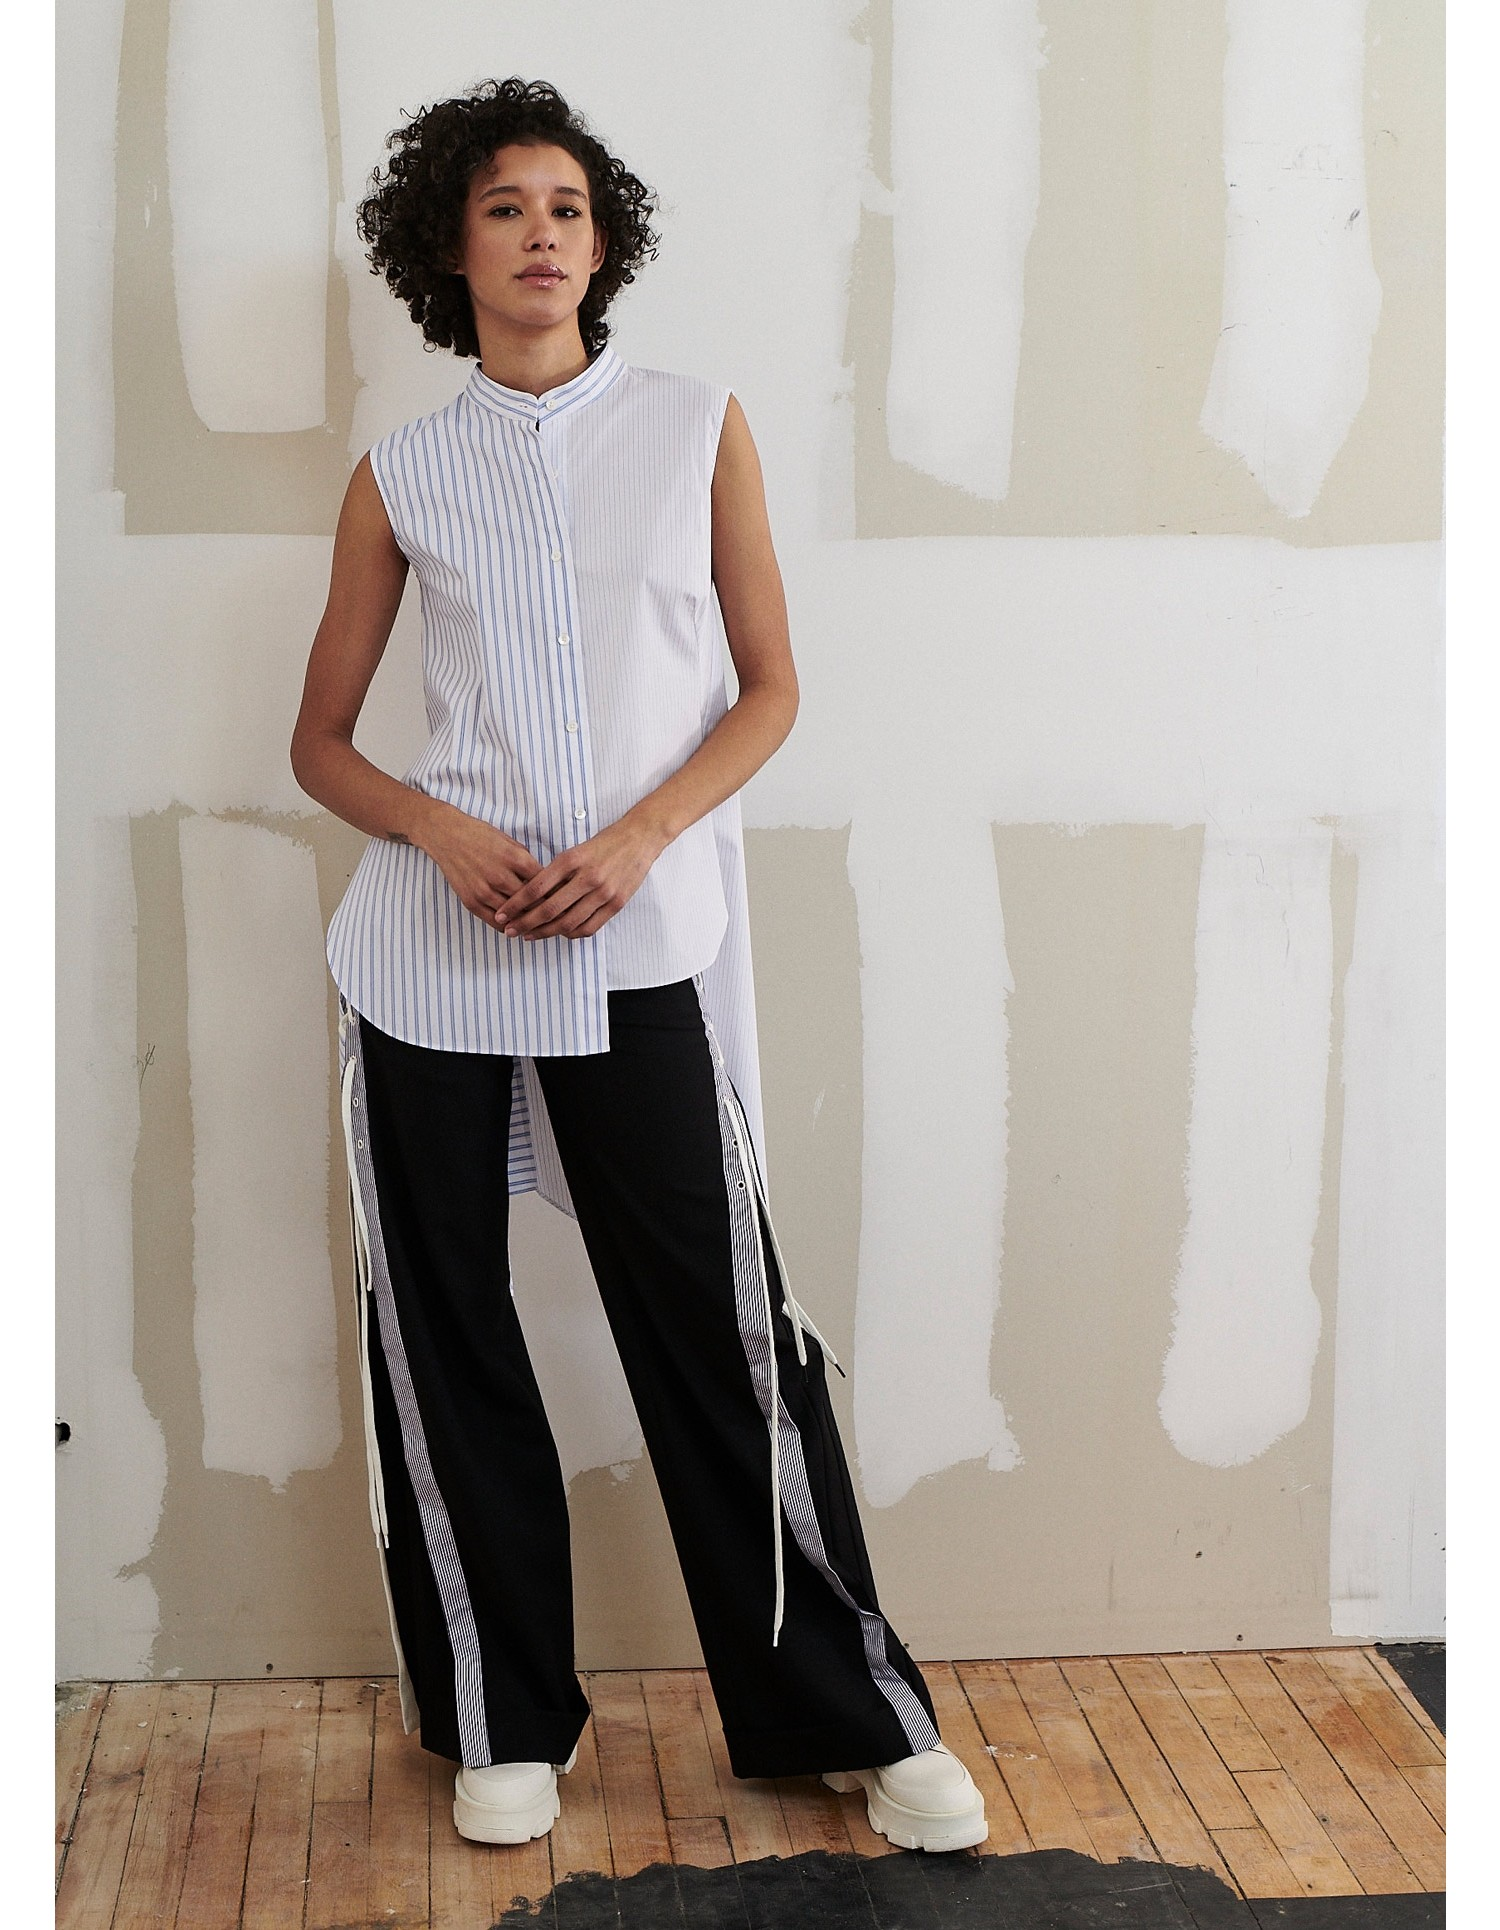 MONSE Lace Up Wide Leg Trouser on Model Front View